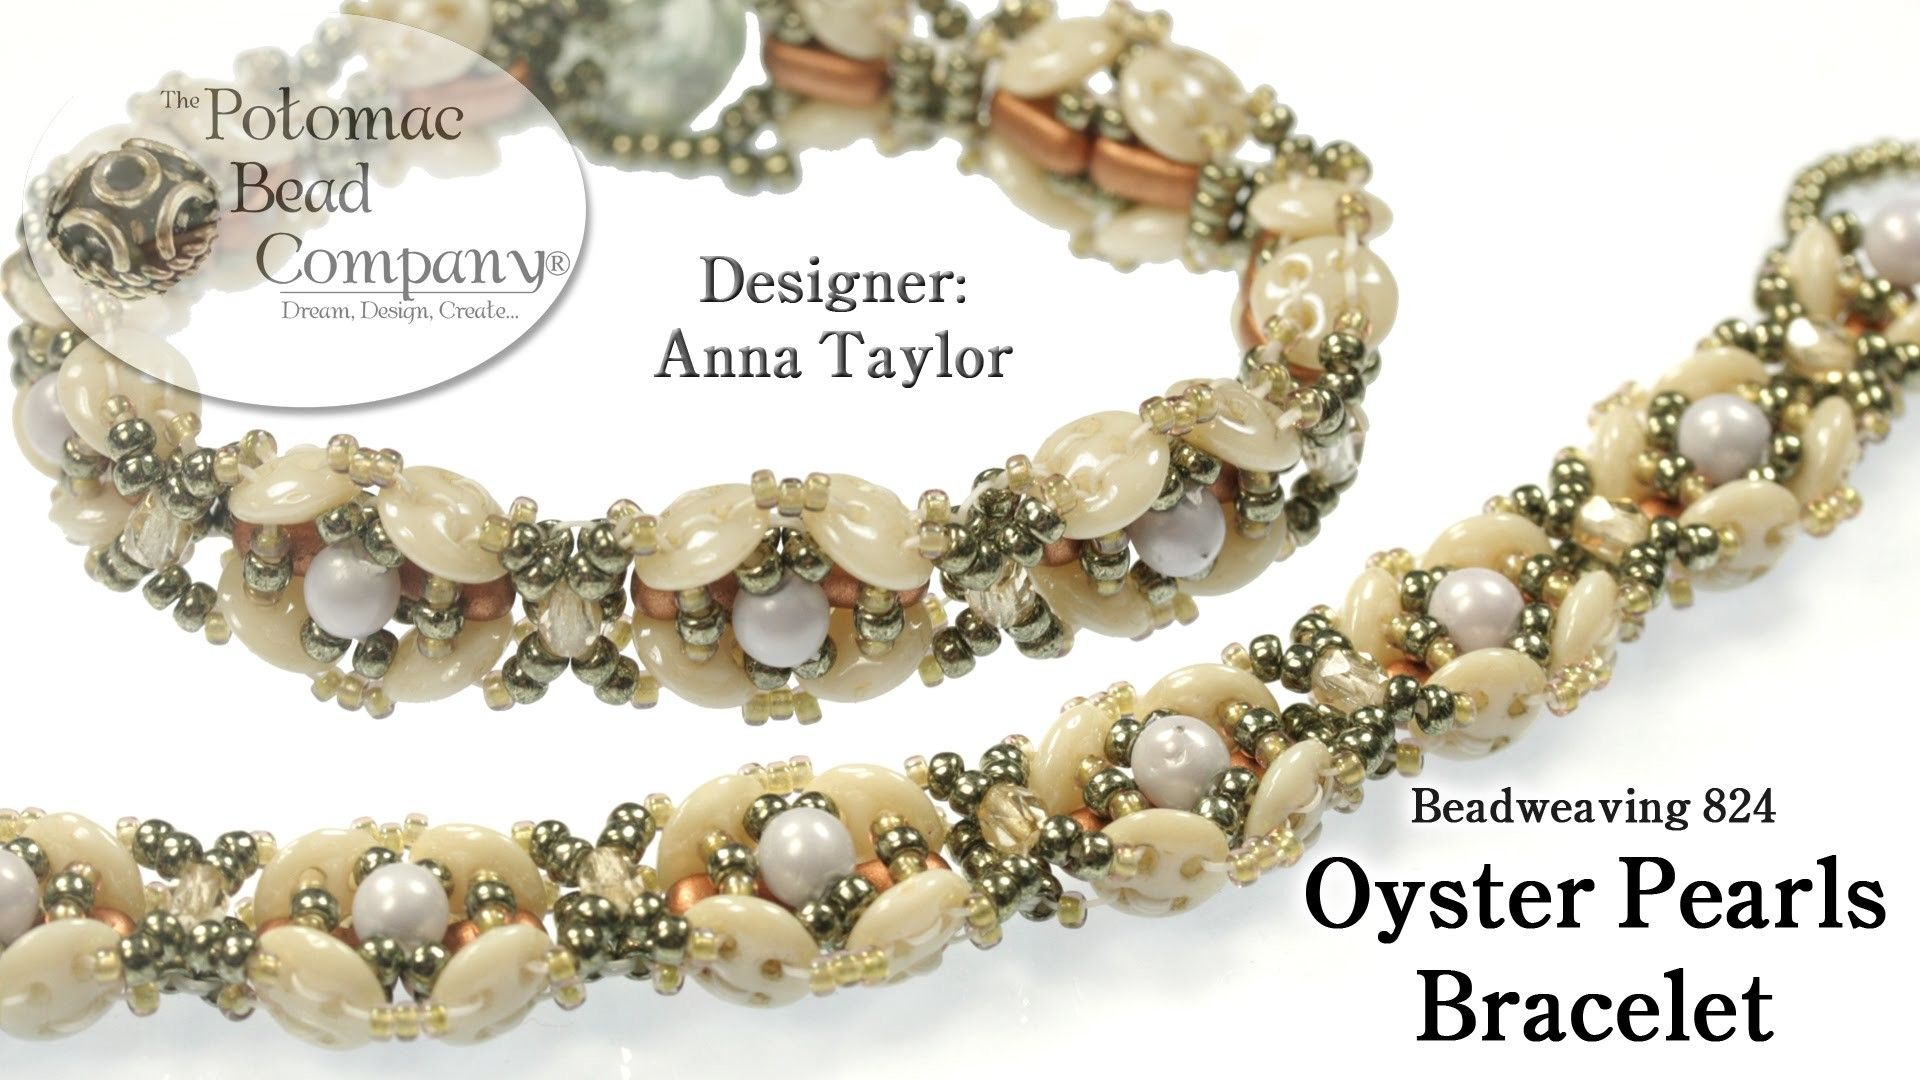 Oyster pearls bracelet improved pearl bracelet oysters and pearls